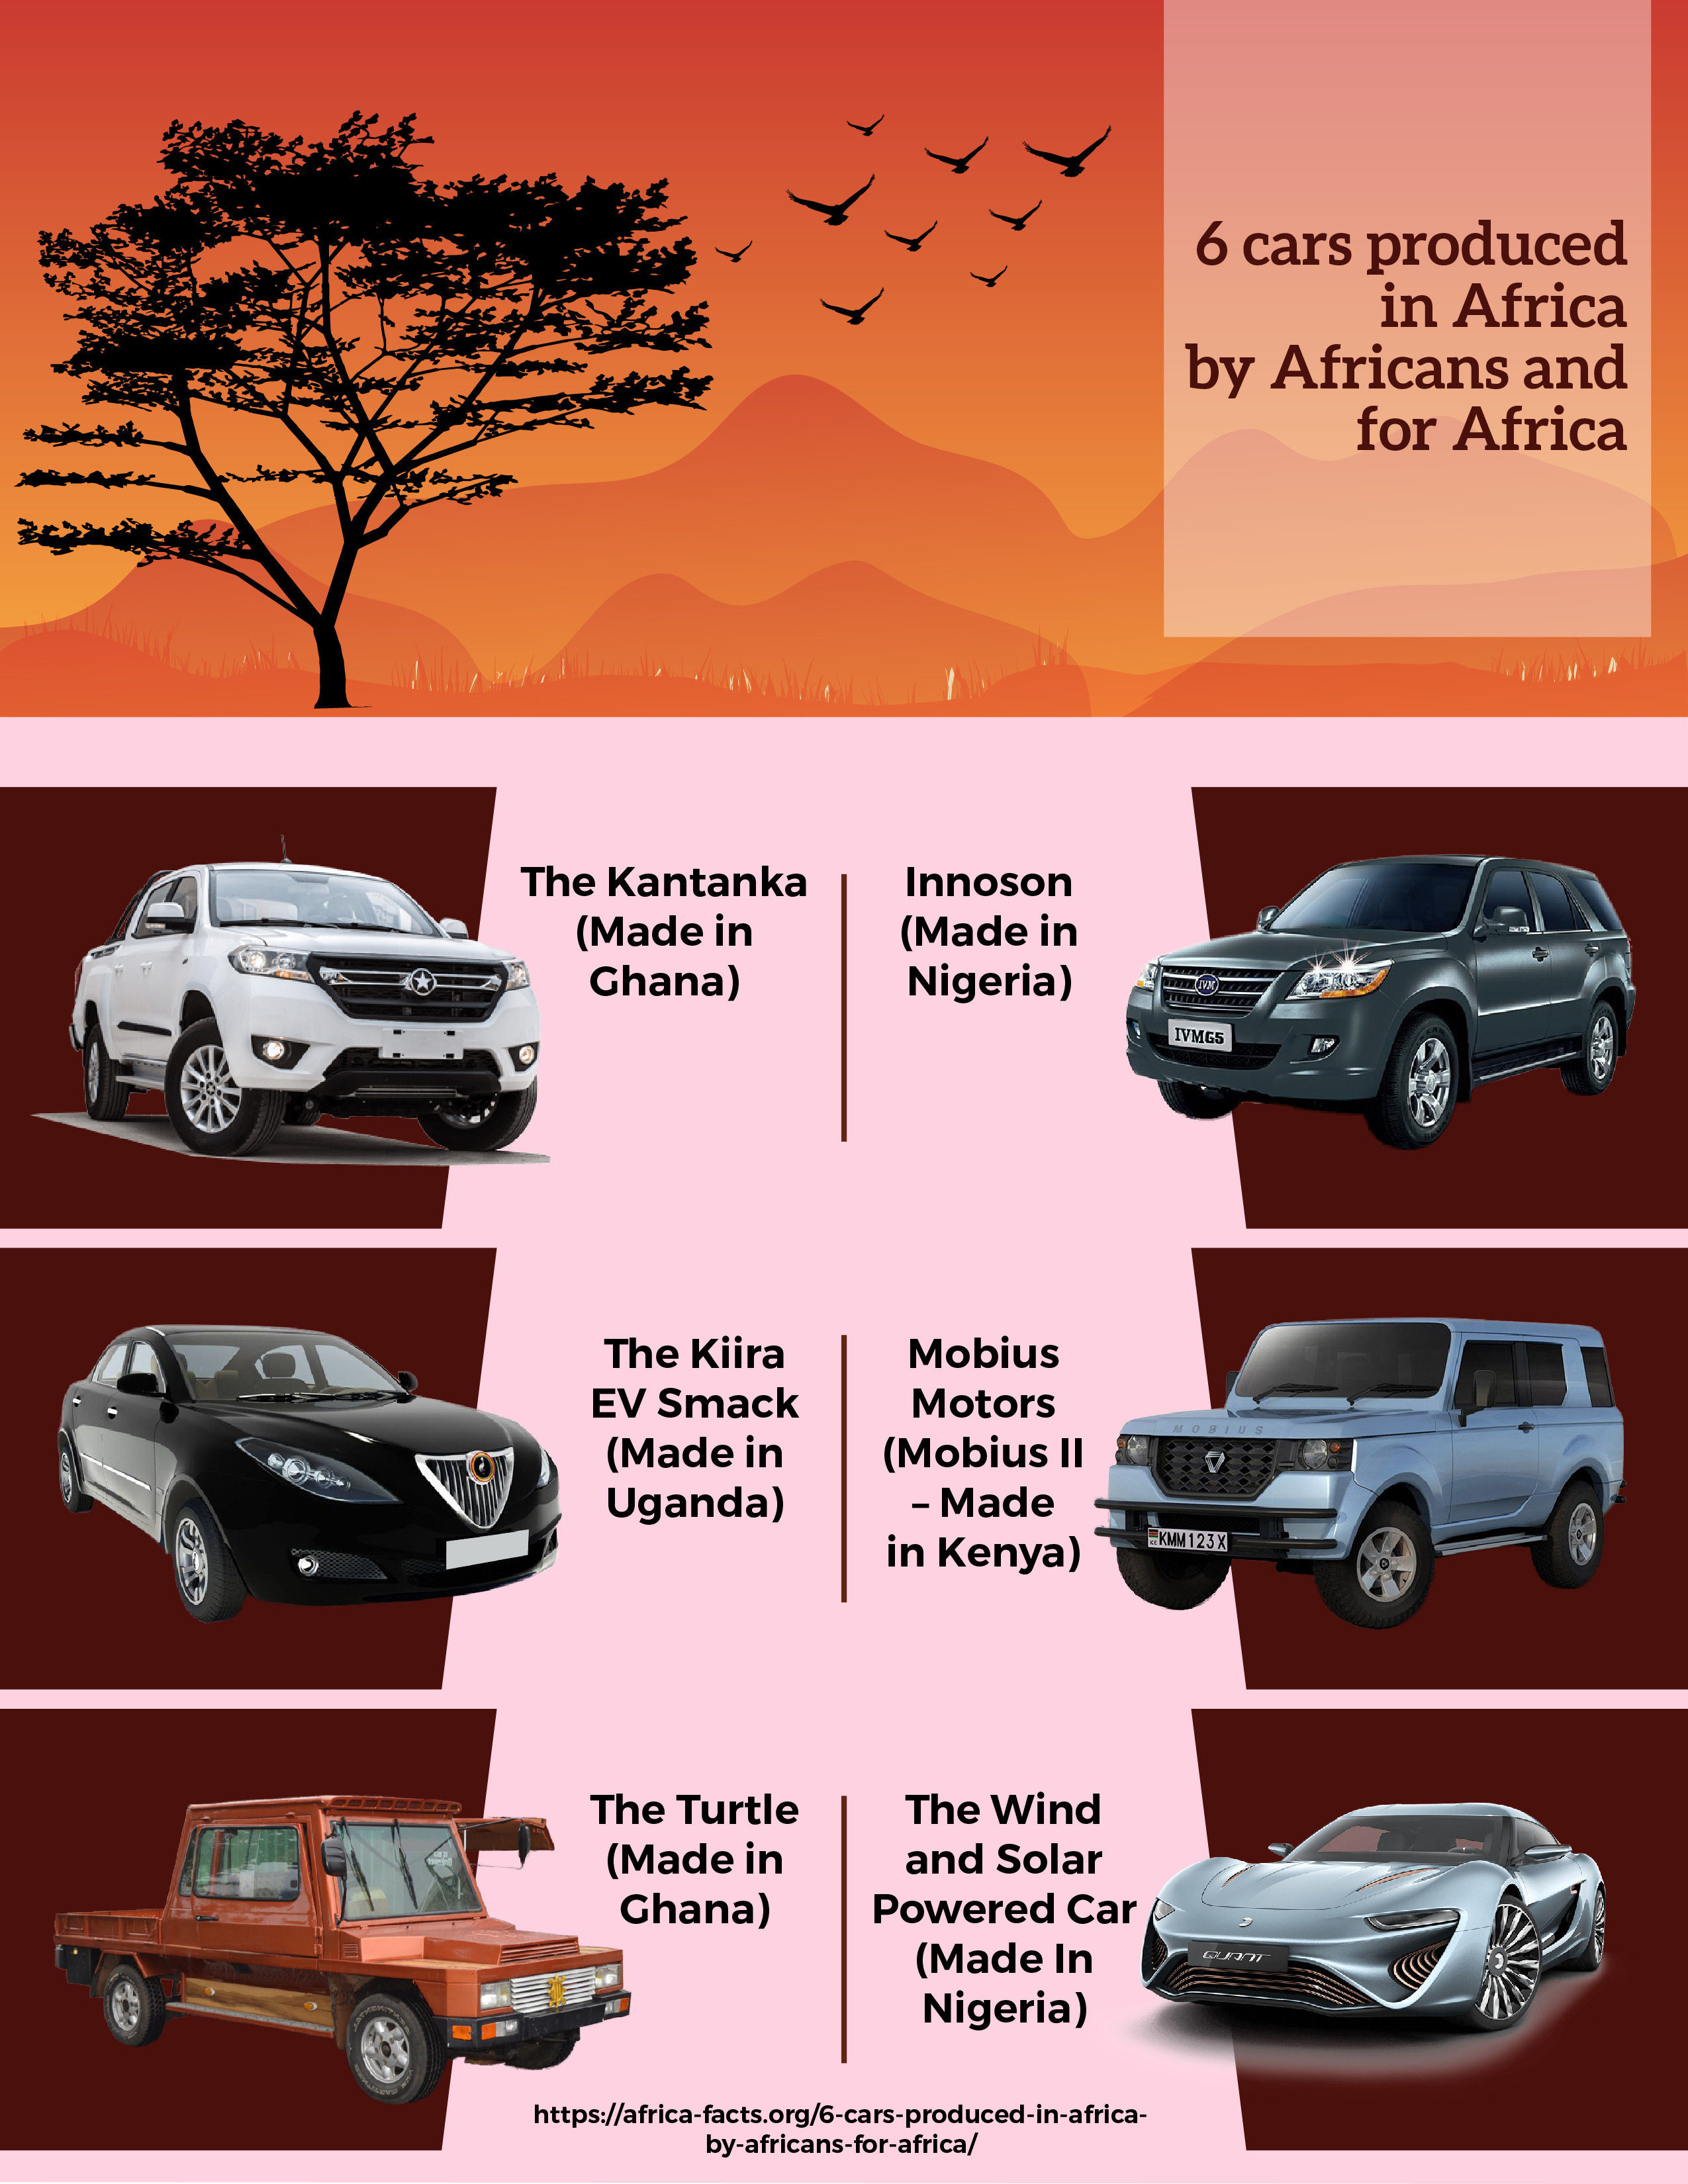 6 cars produced in Africa